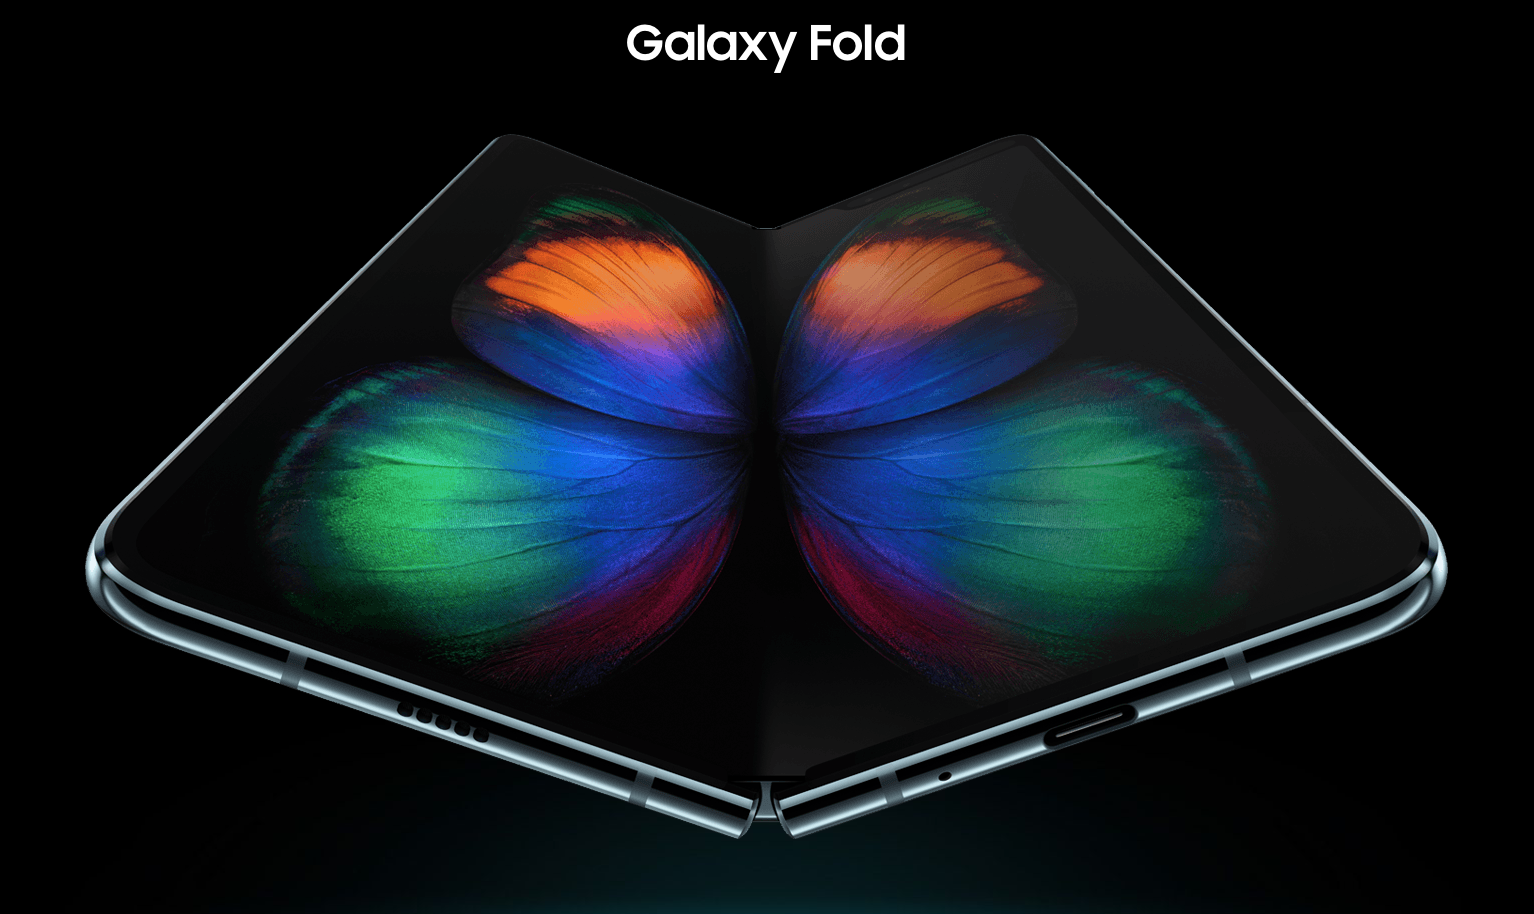 Samsung Galaxy Fold will come to 15 countries in Europe, starting at a whopping €2,000